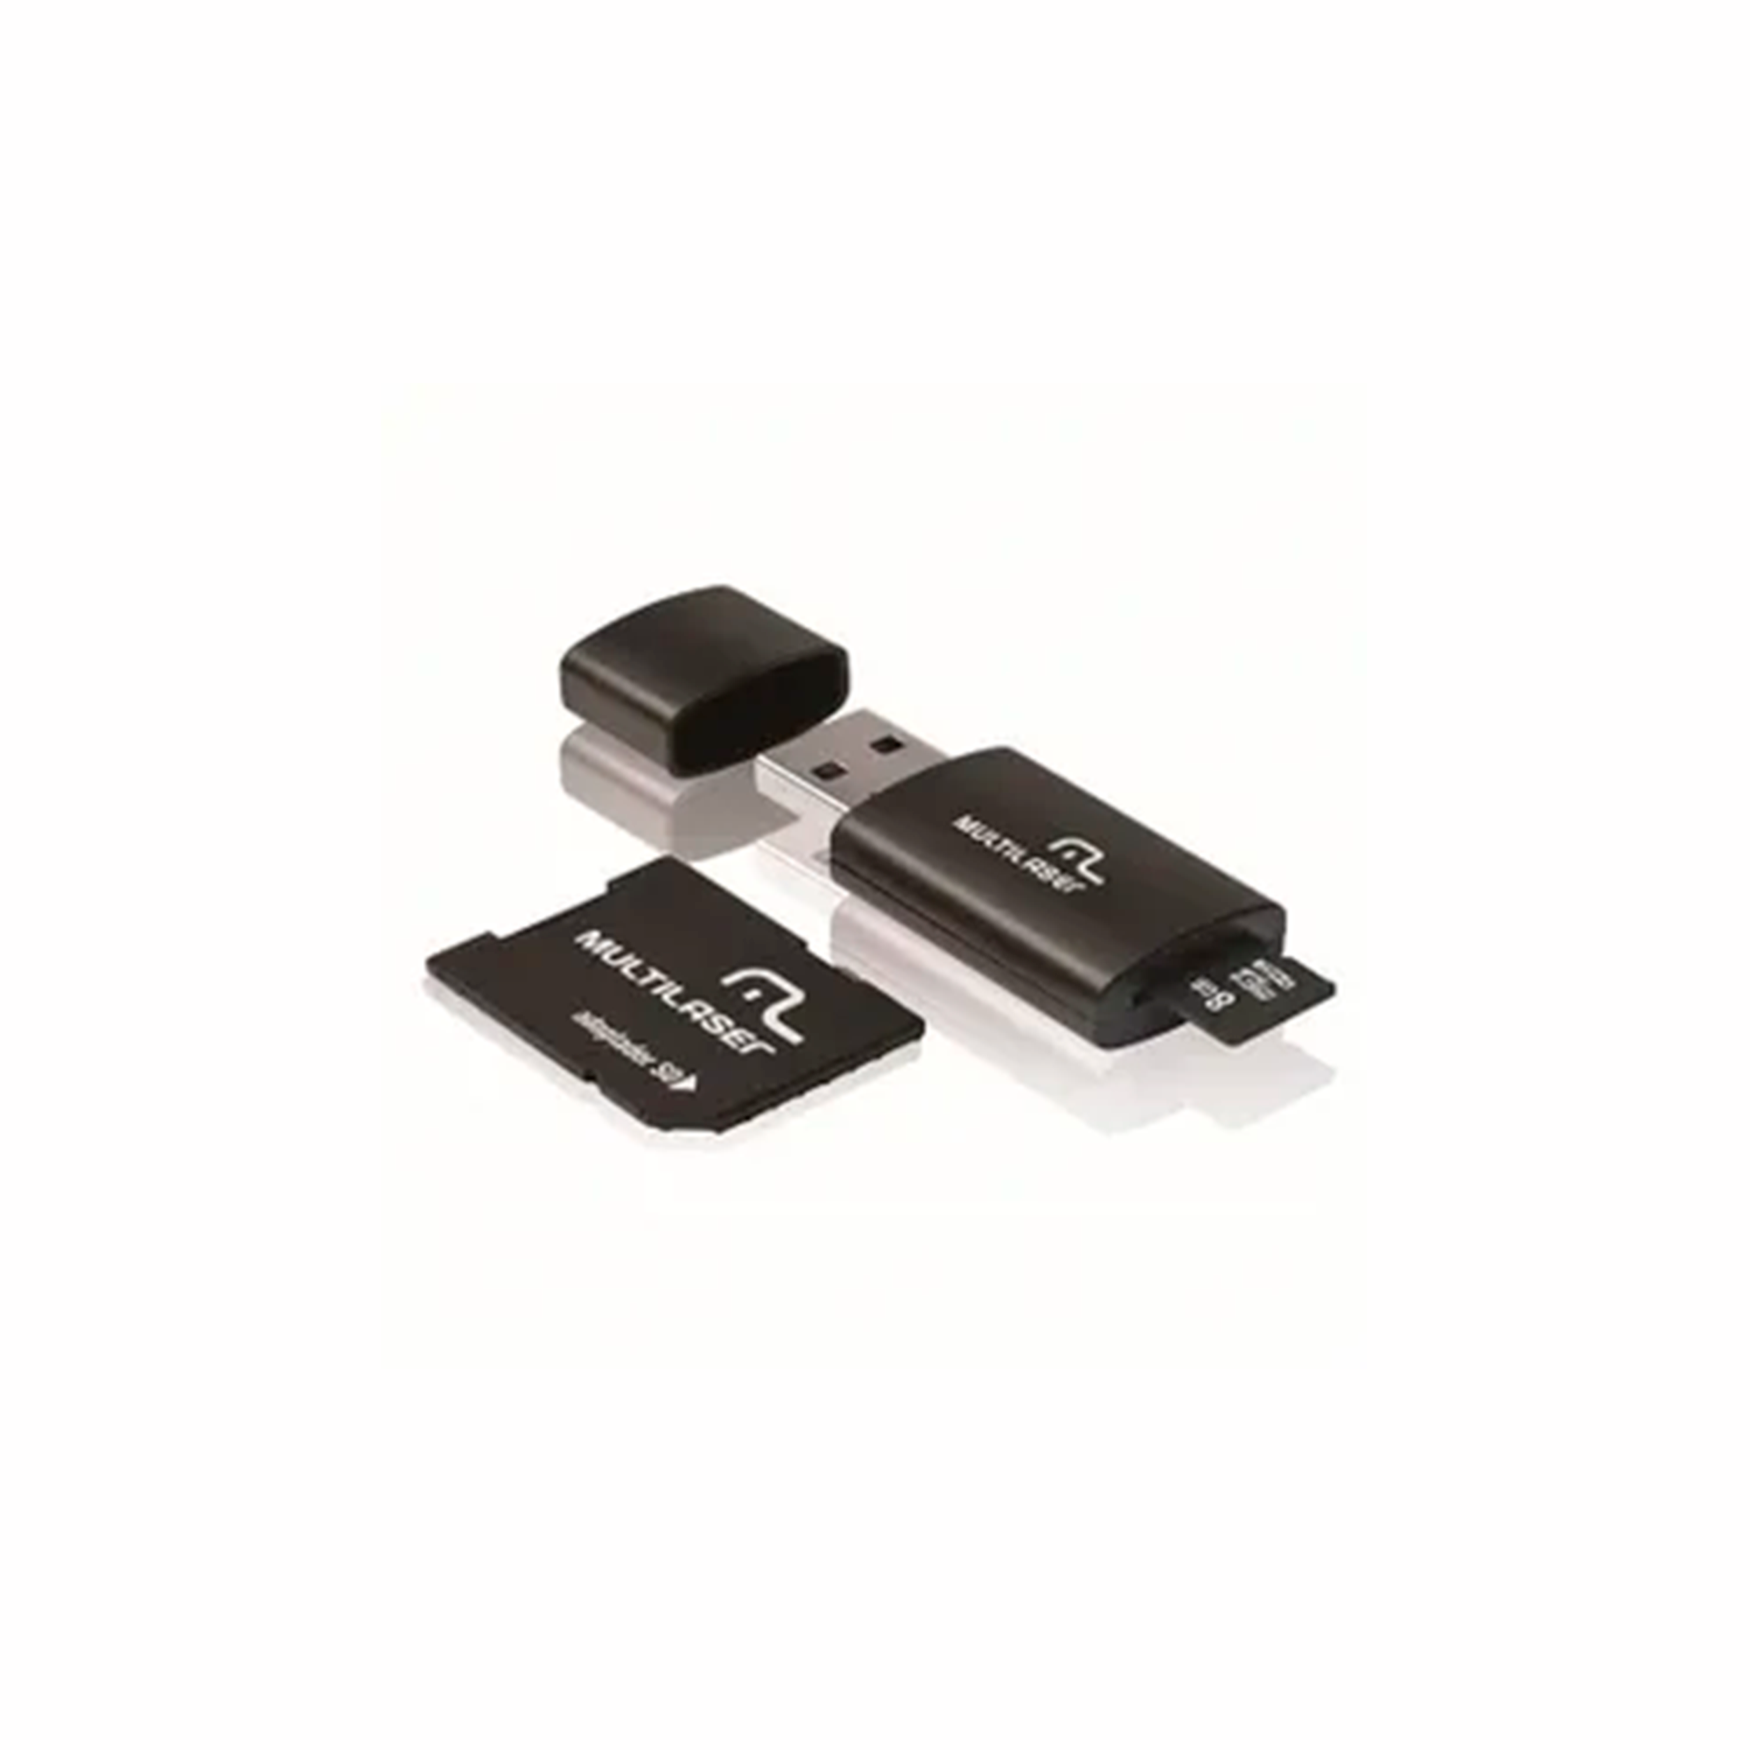 MEMORIA/PENDRIVE 64GB MC115 MULTILASER